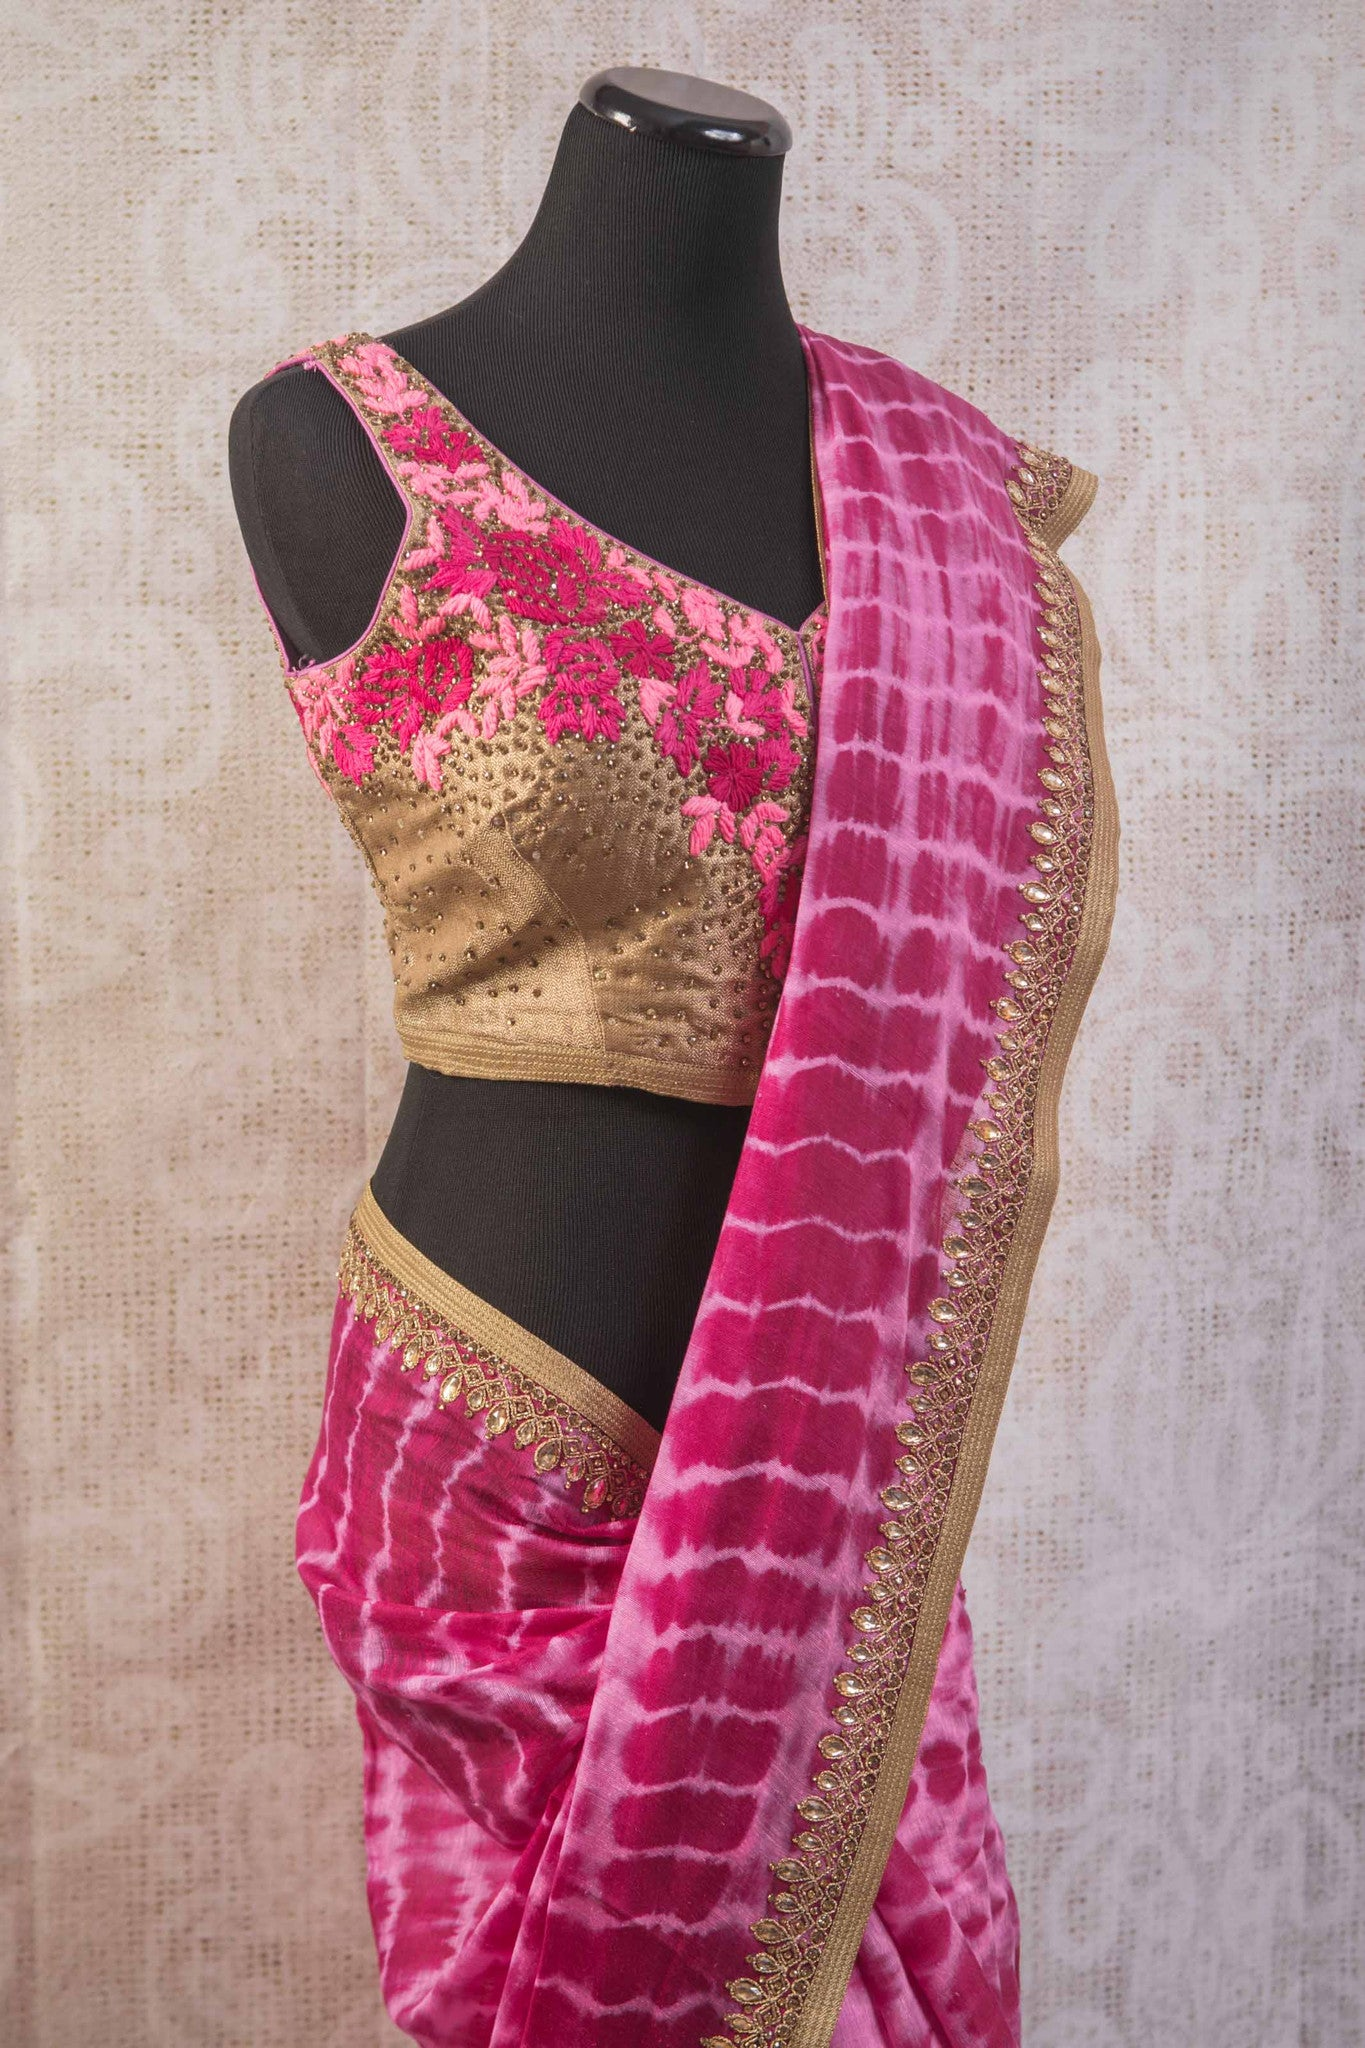 90b806 Tie dye saree with an embroidered blouse and border. The beautiful pink Indian sari online at Pure Elegance is versatile and can be styled in very many ways!